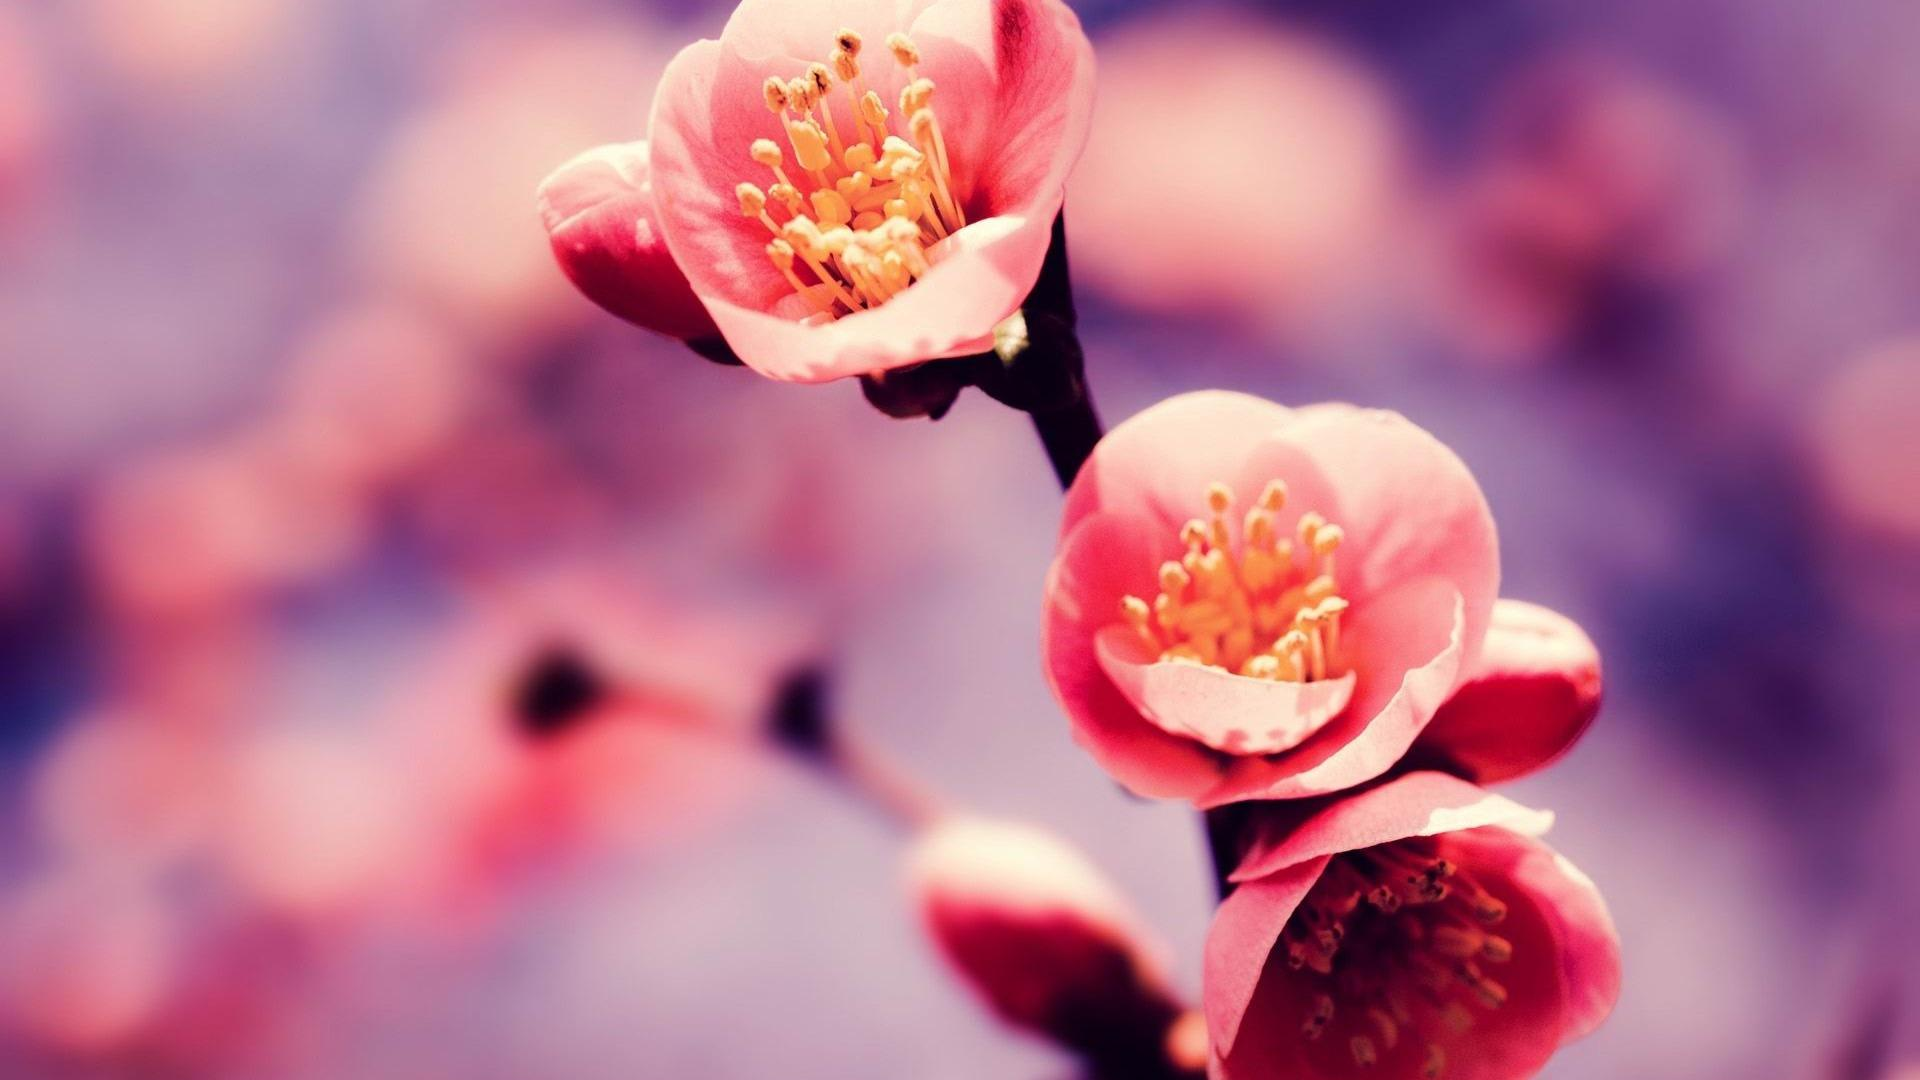 spring-flowers-picture-wallpaper-hd-download-free-06